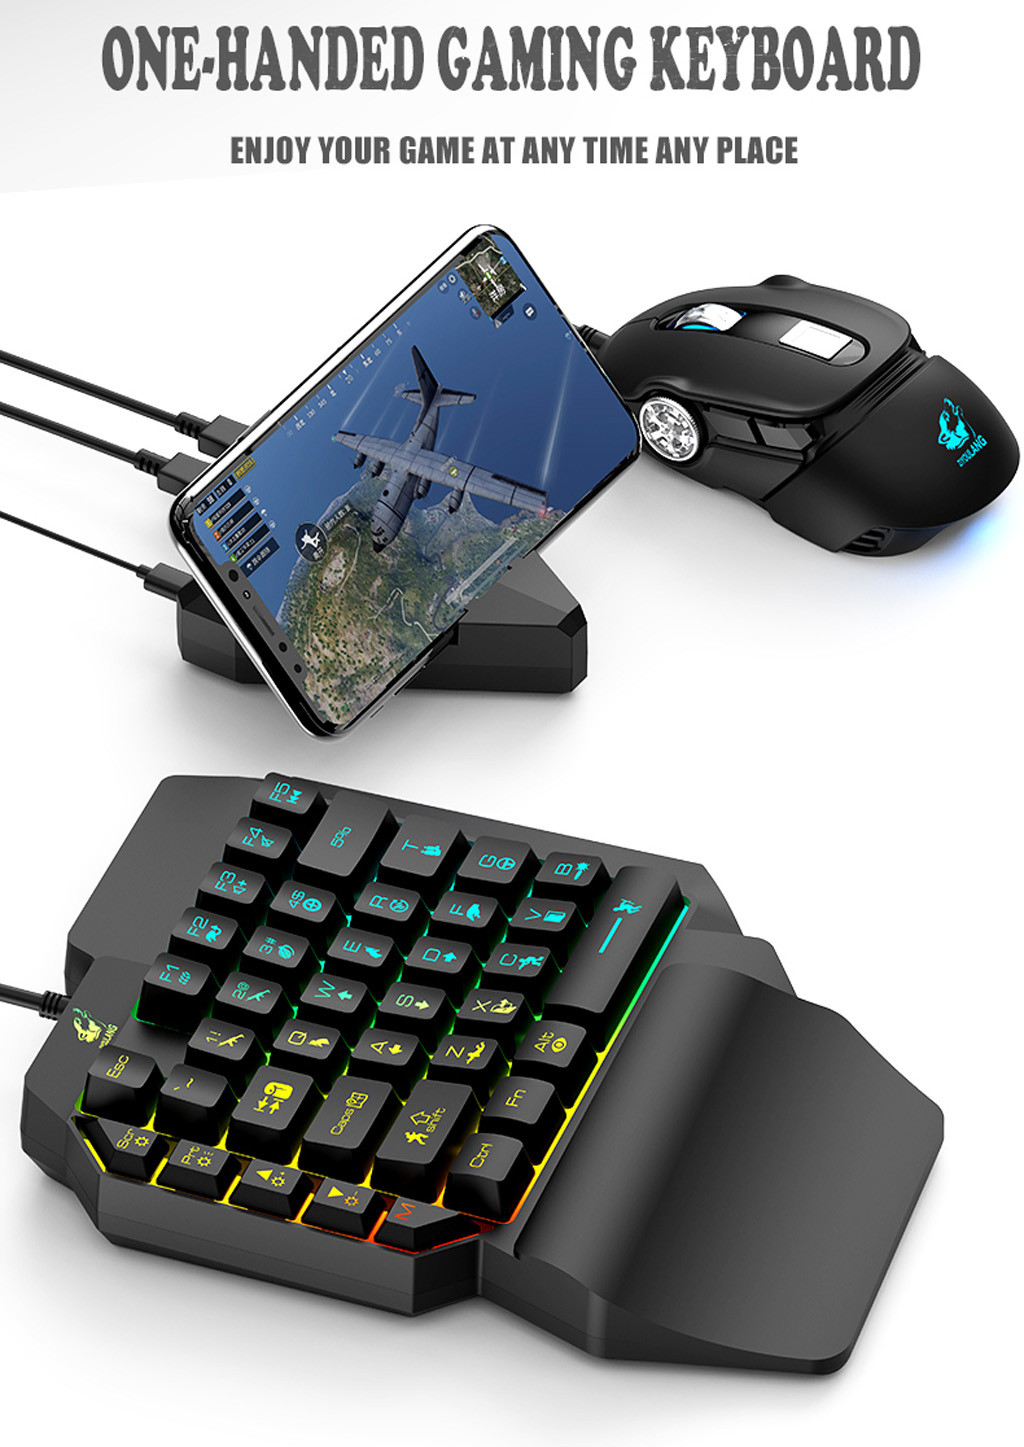 Nova T15 Wired Gaming Teclado com Retroiluminação LED 39 Chaves One-handed Flutuante LED Backlit Teclado de Membrana Teclado Gamer # G4